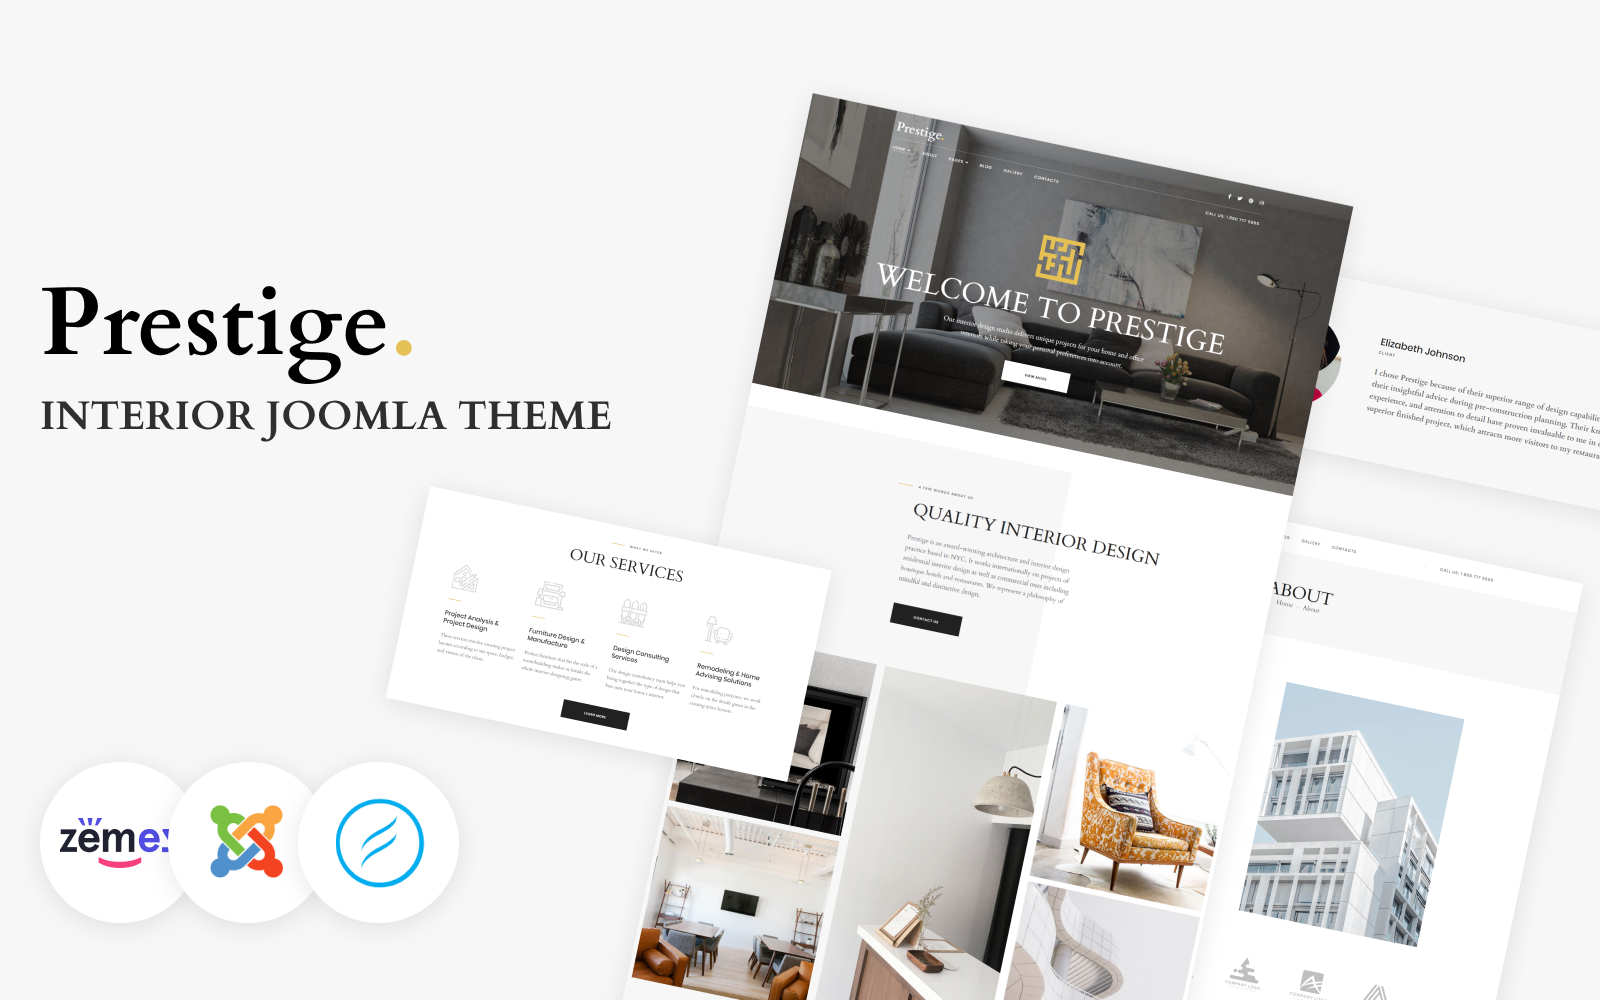 Prestige - Interior Design Multipage Joomla Template